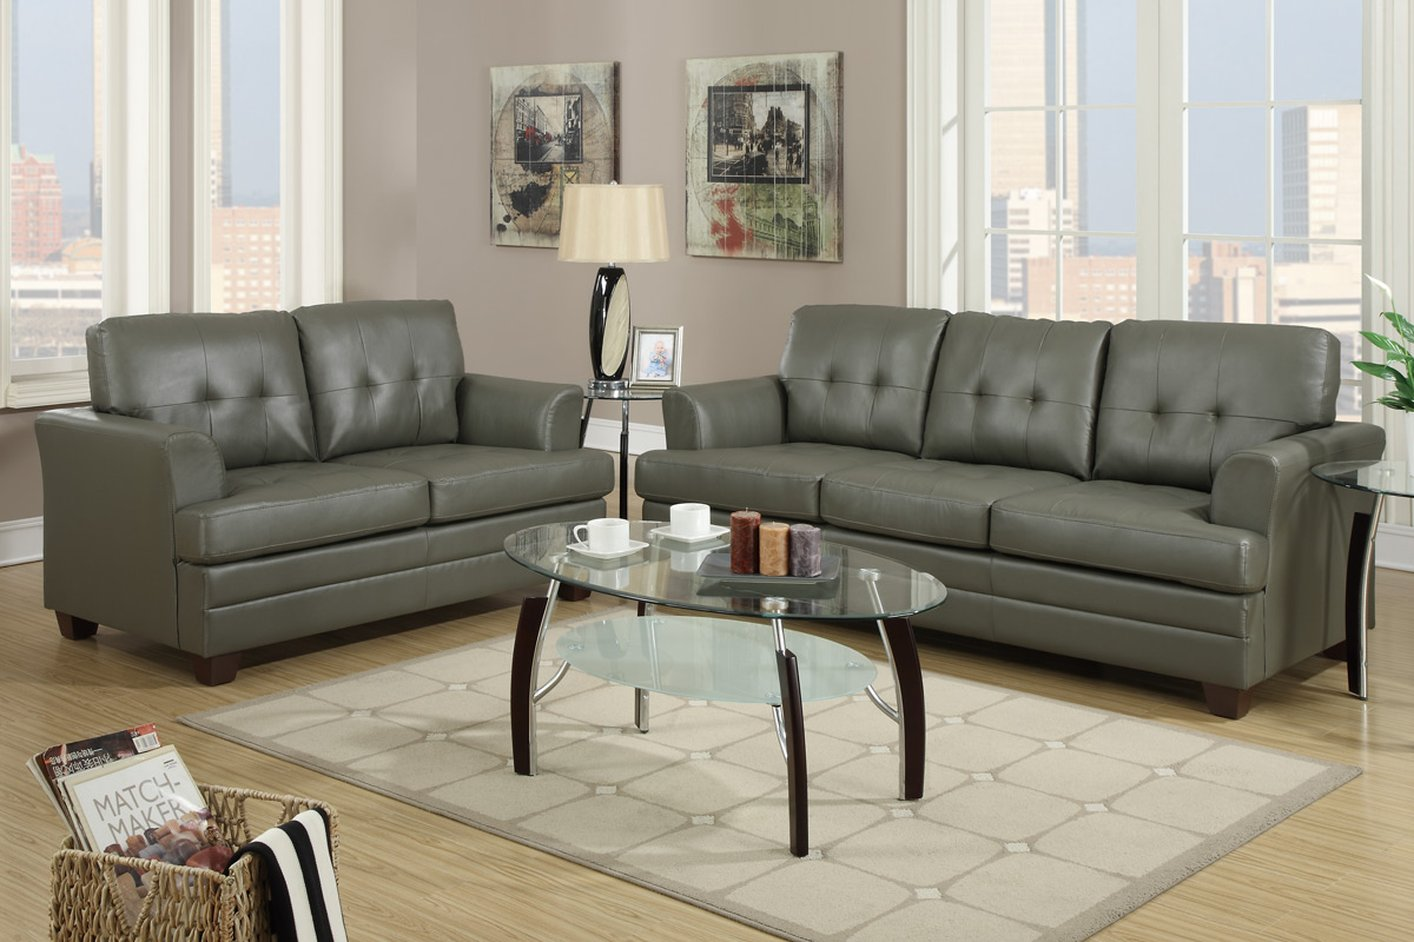 Poundex F7774 Grey Leather Sofa And Loveseat Set Steal A